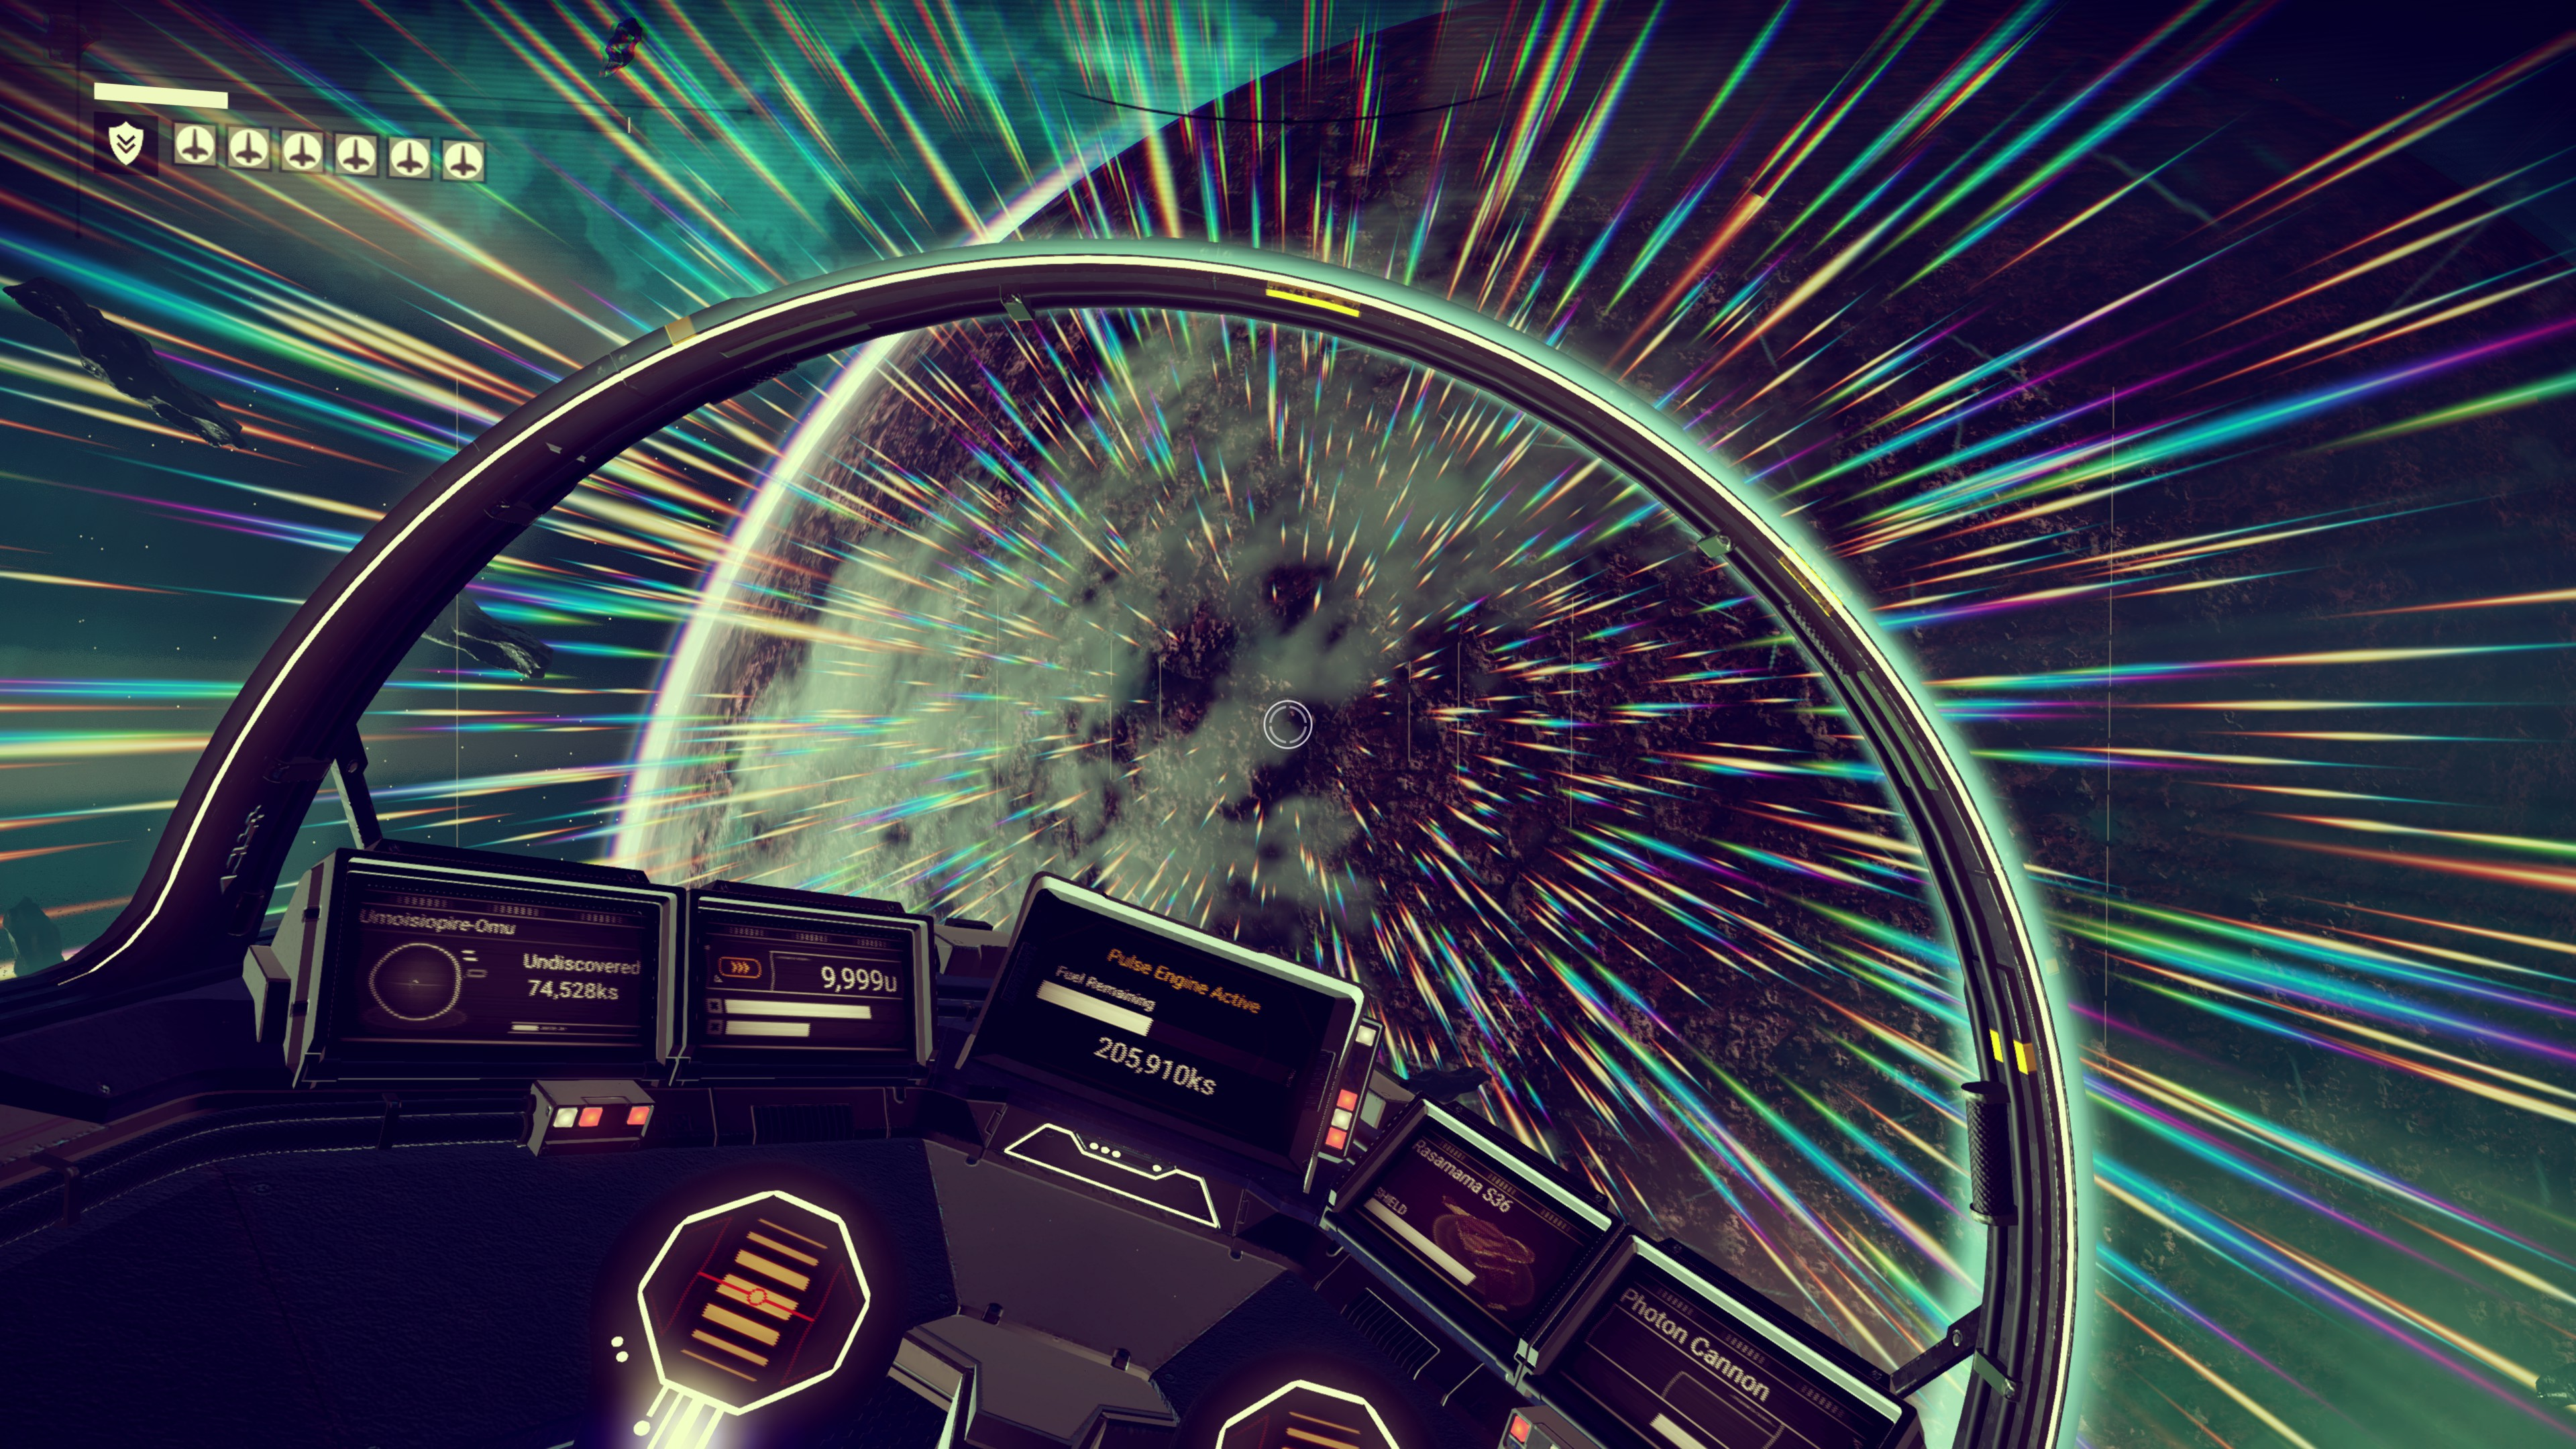 11 best space games on PC that are out of this world | TechRadar